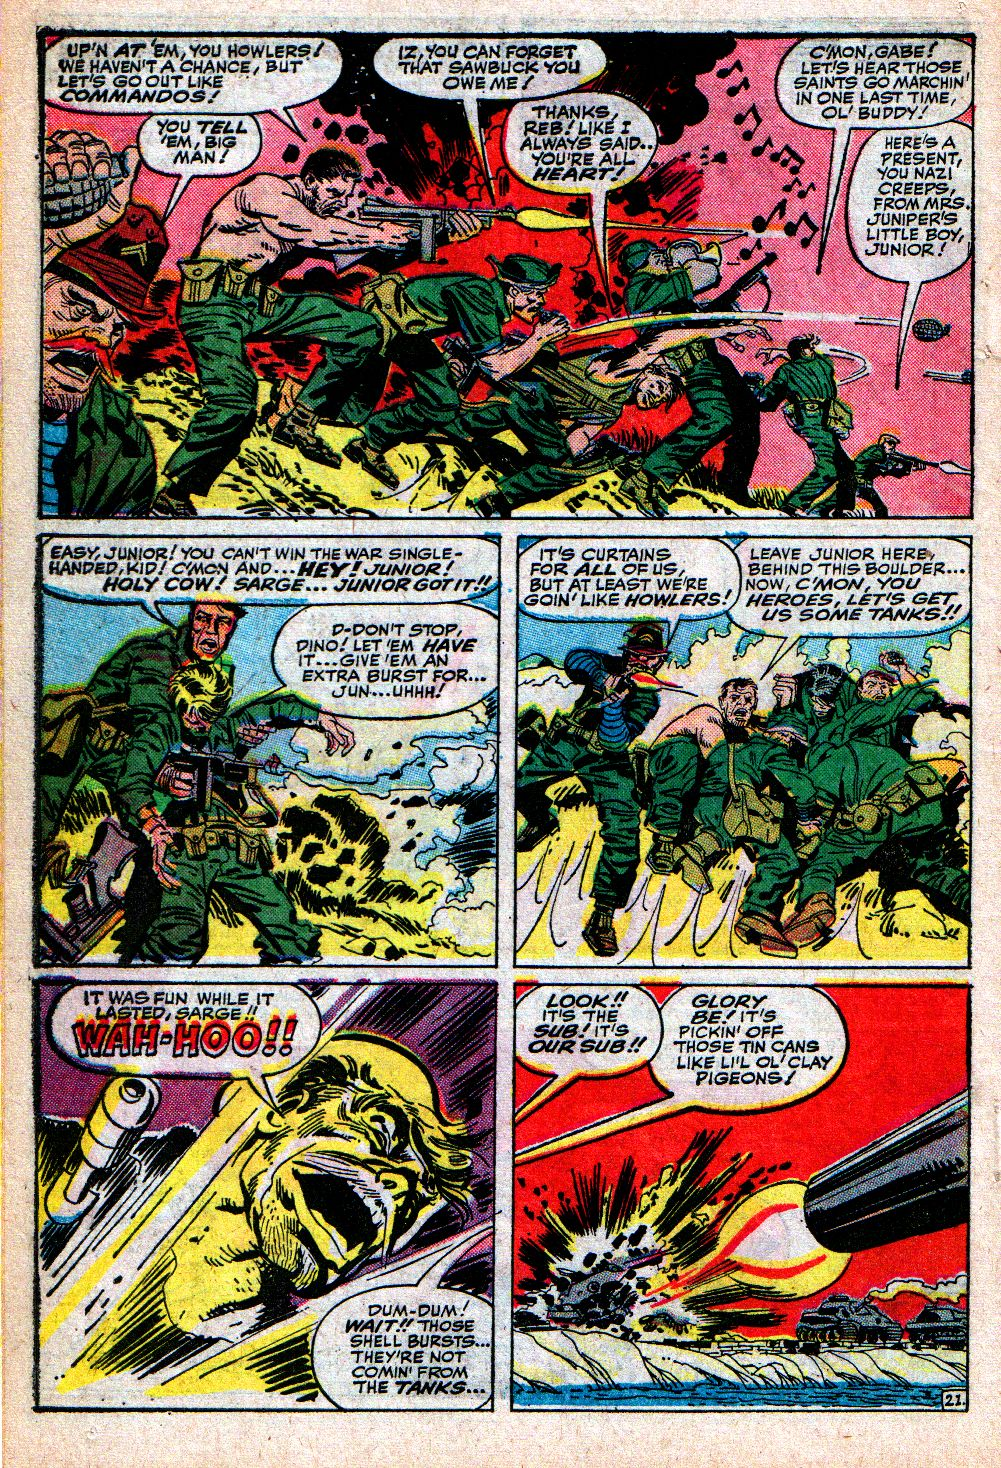 Read online Sgt. Fury comic -  Issue #4 - 30